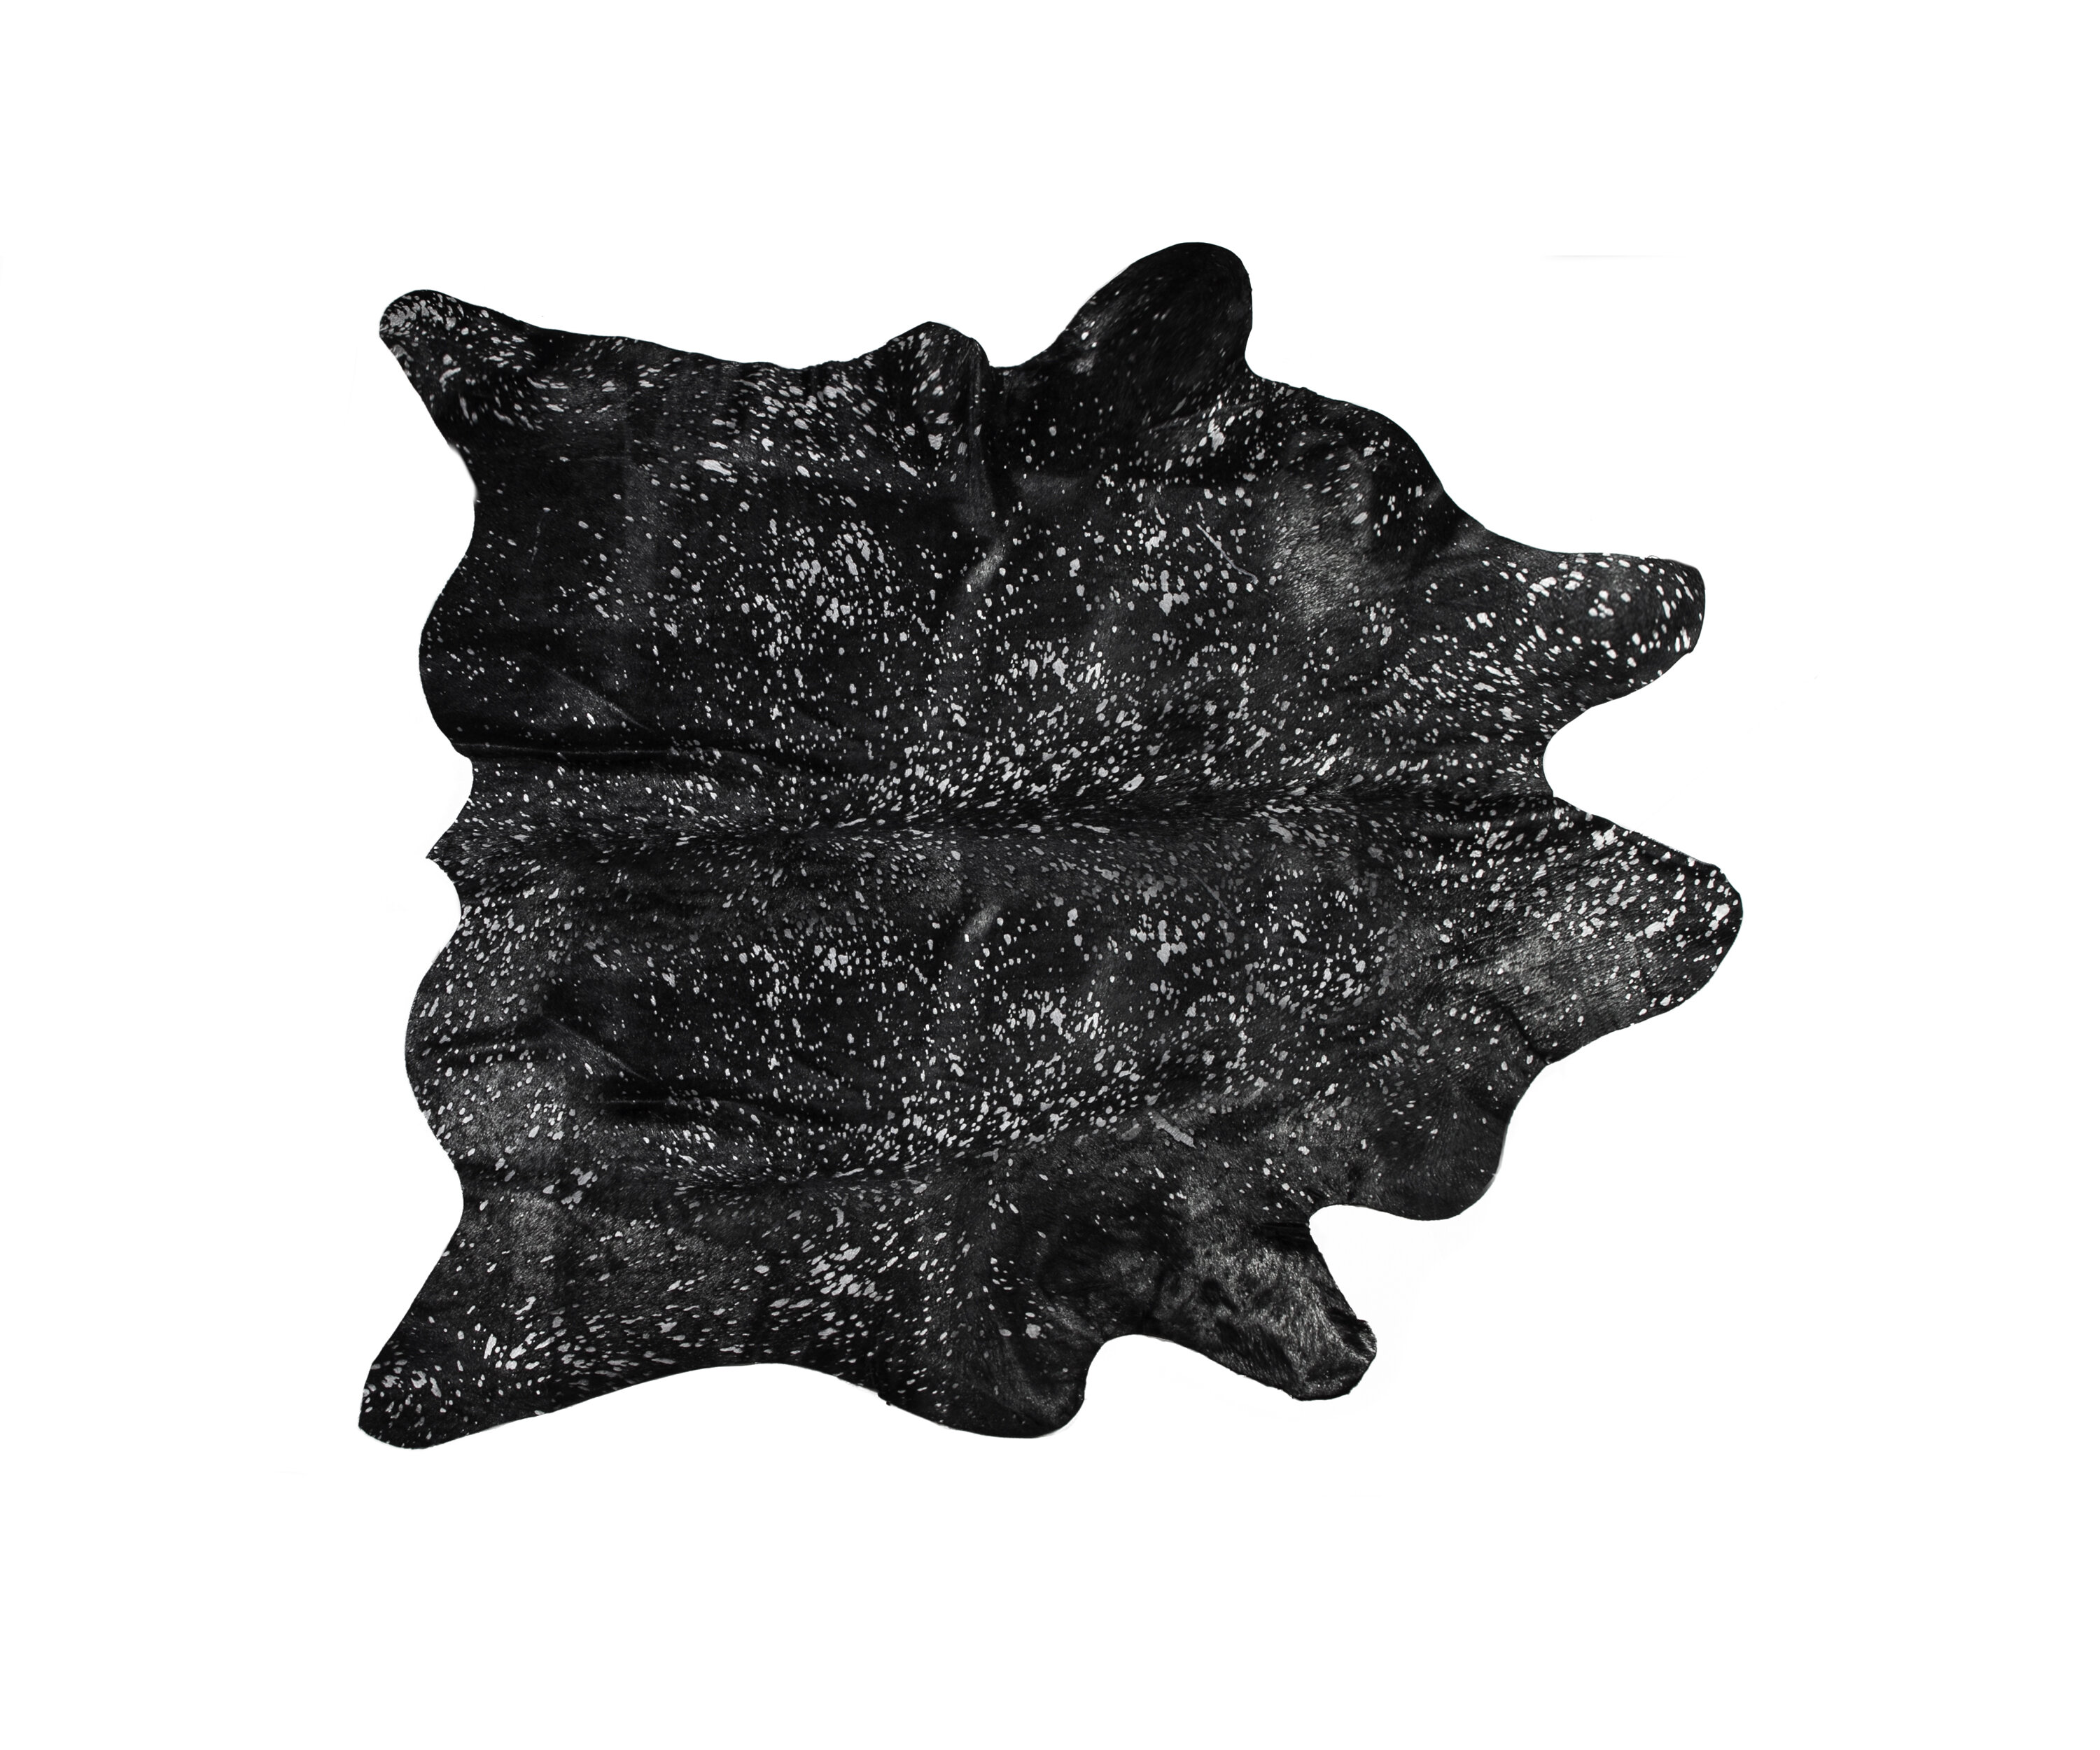 Brayden Studio Houchin Animal Print Handmade Cowhide Black Area Rug Wayfair